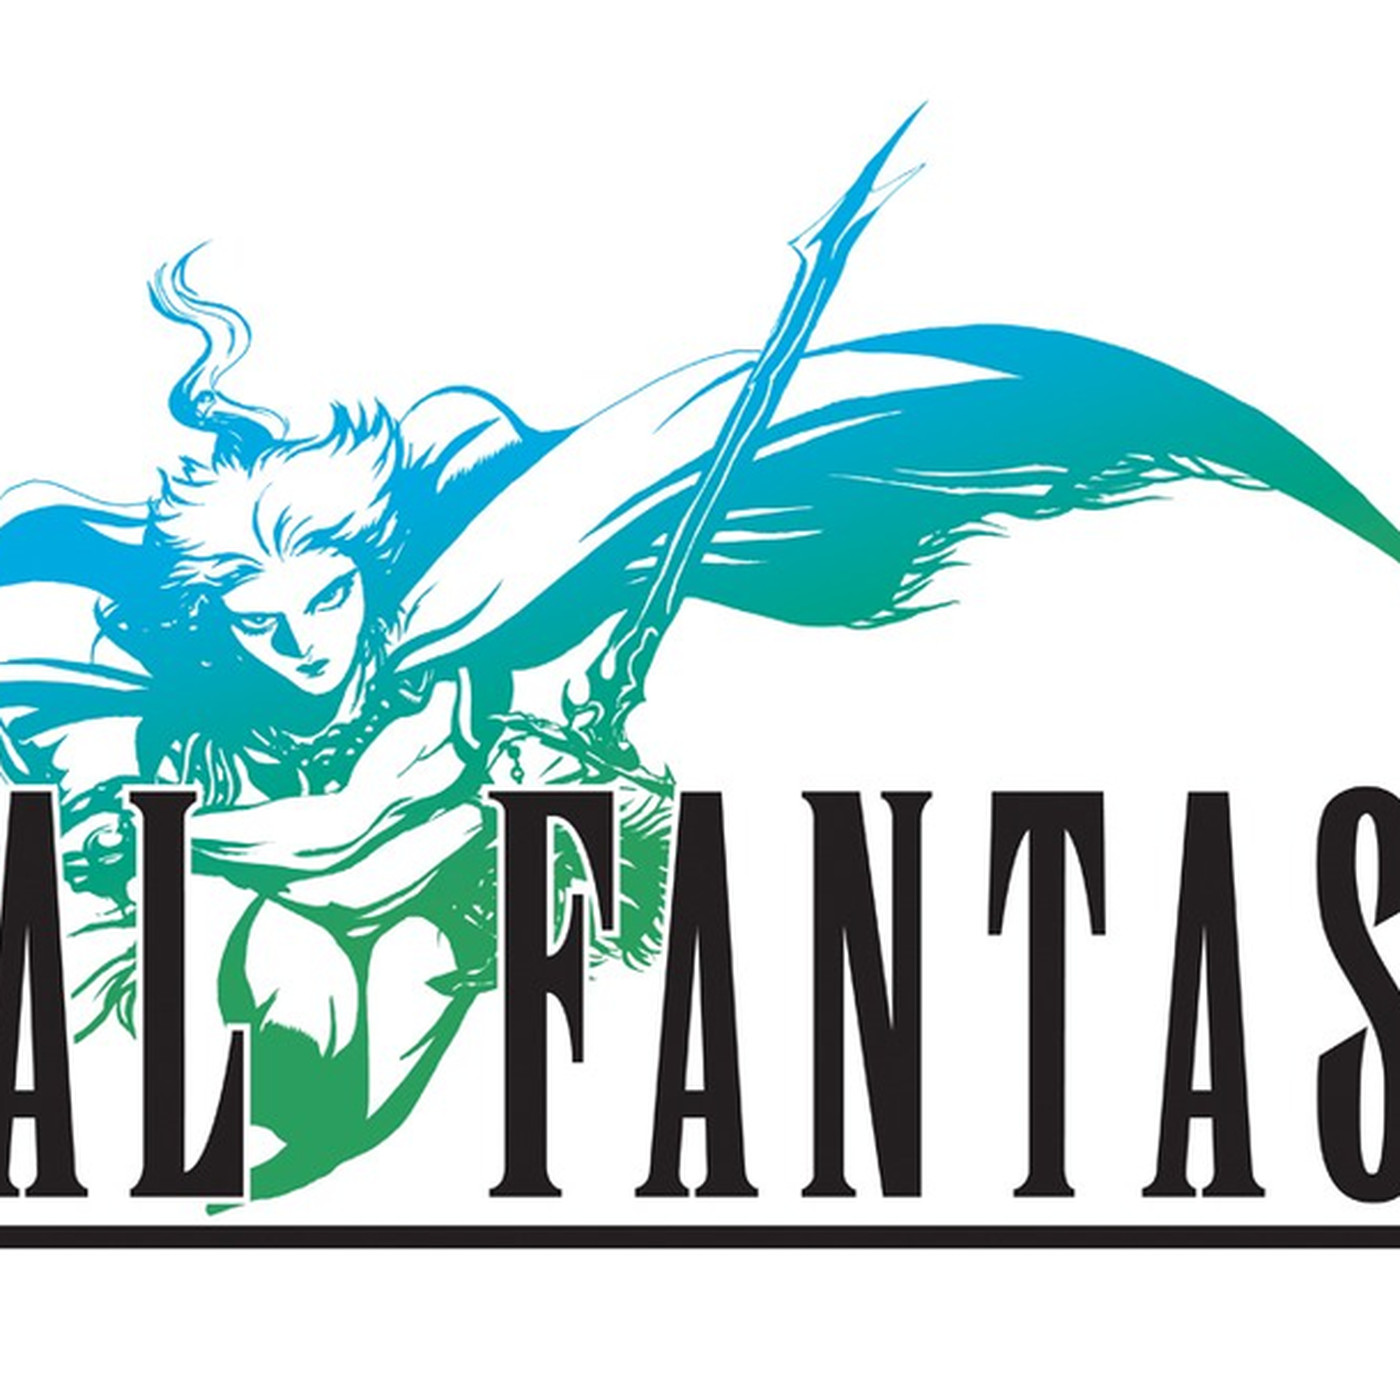 Final Fantasy III\' coming to Ouya in March 2013.